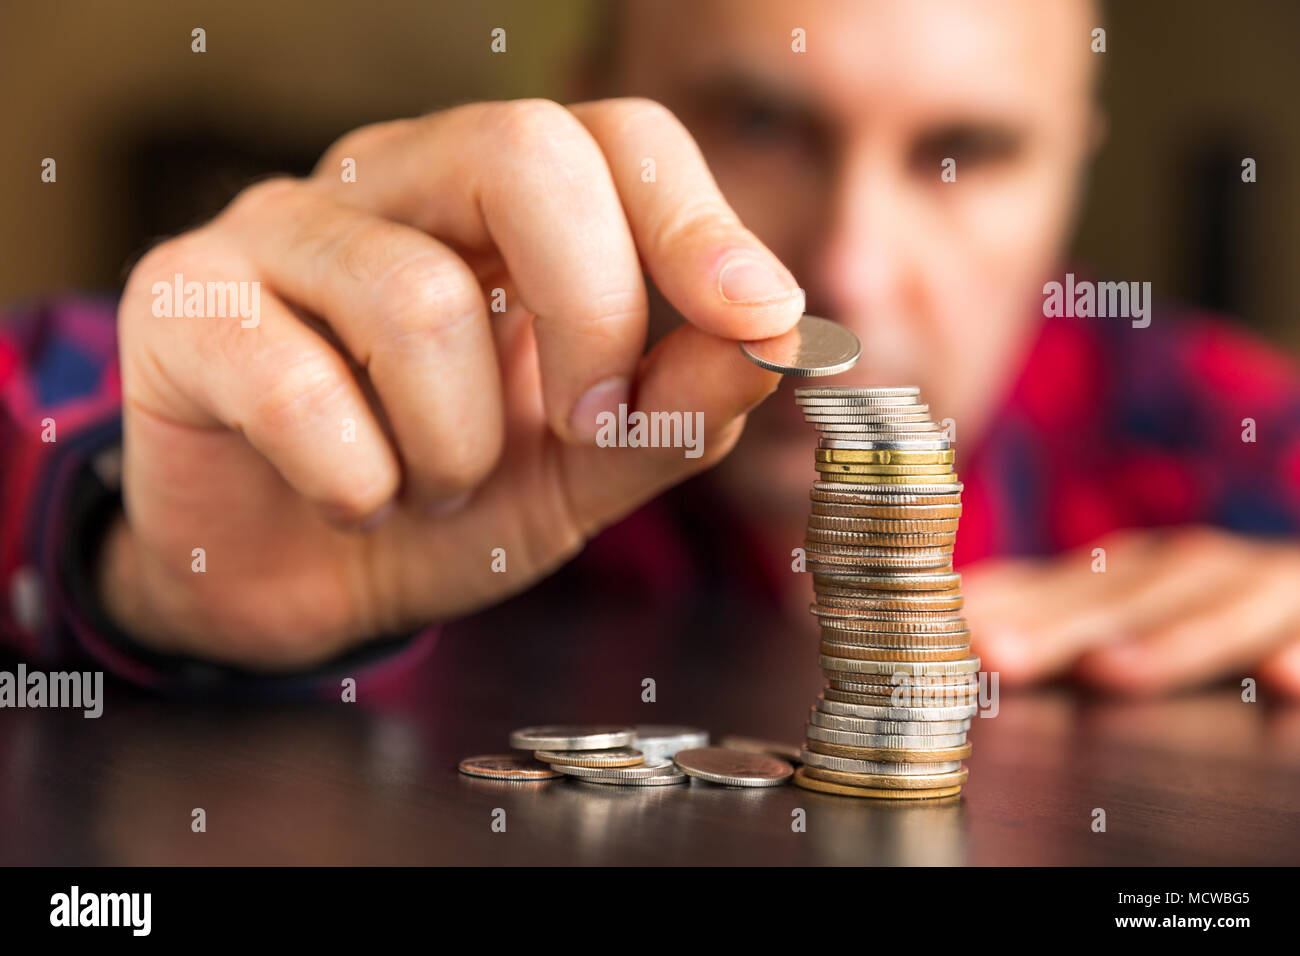 Unidentifiable man counts his coins on a table. Personal finance, finance management, thrifty or avarice concept. - Stock Image